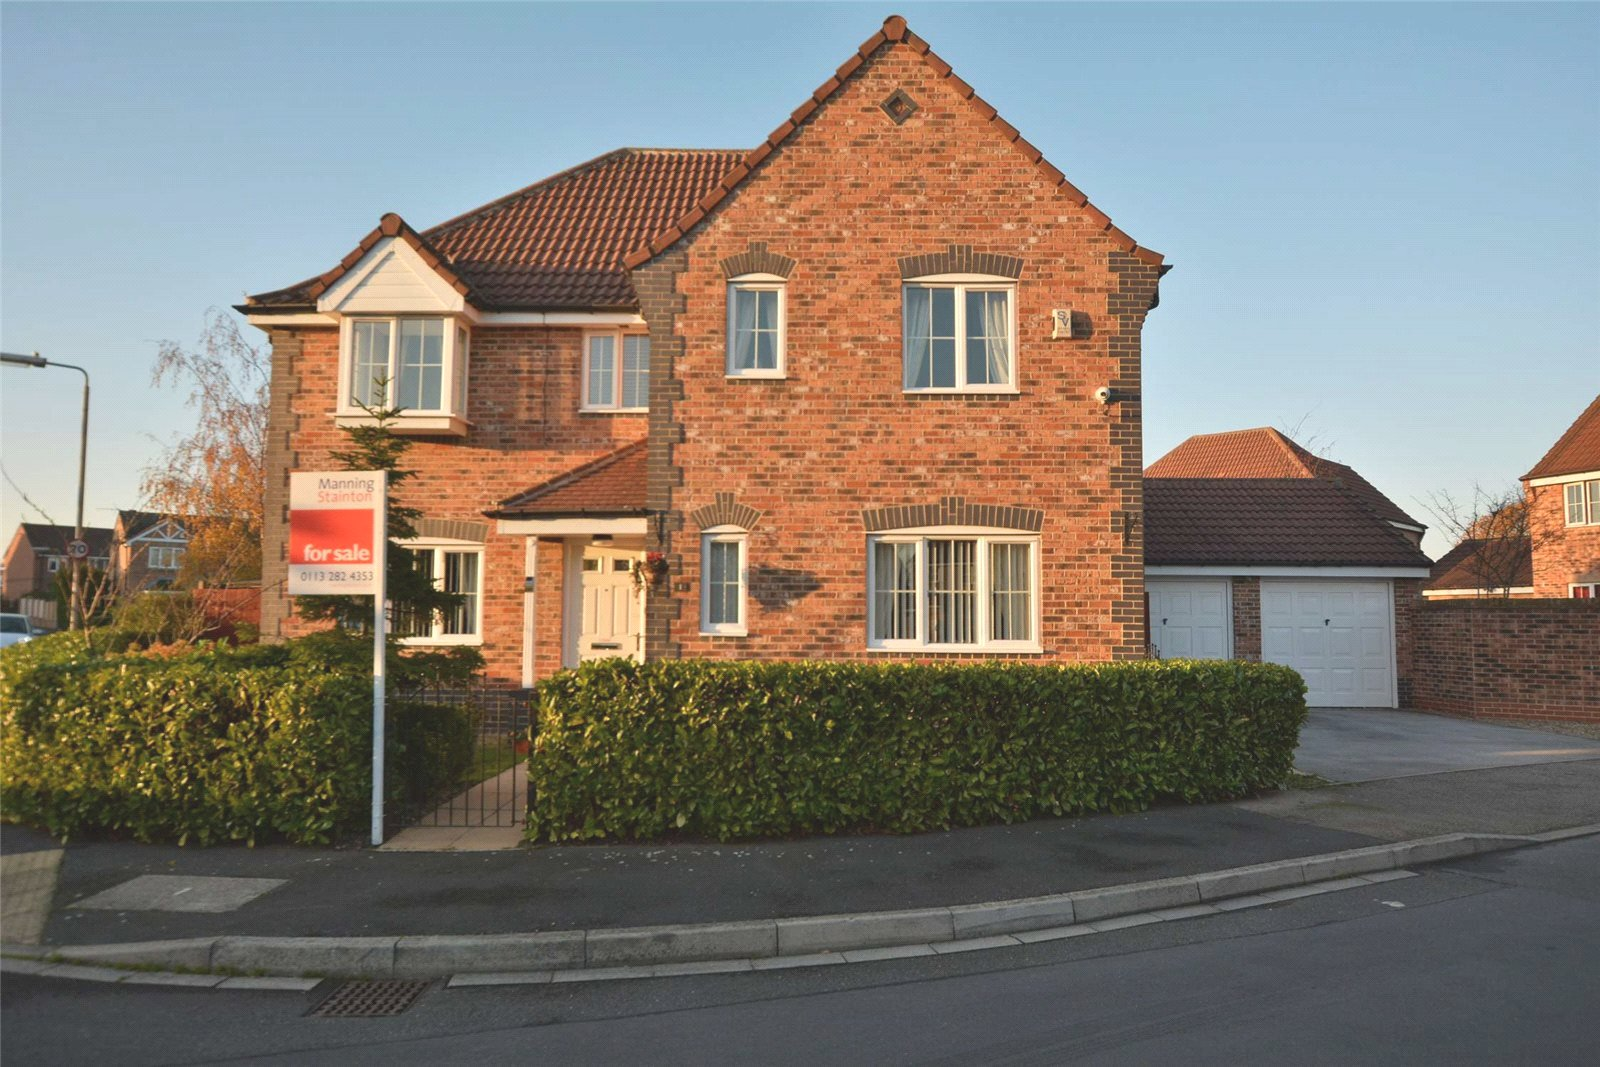 Property for sale in Rothwell, exterior detached home